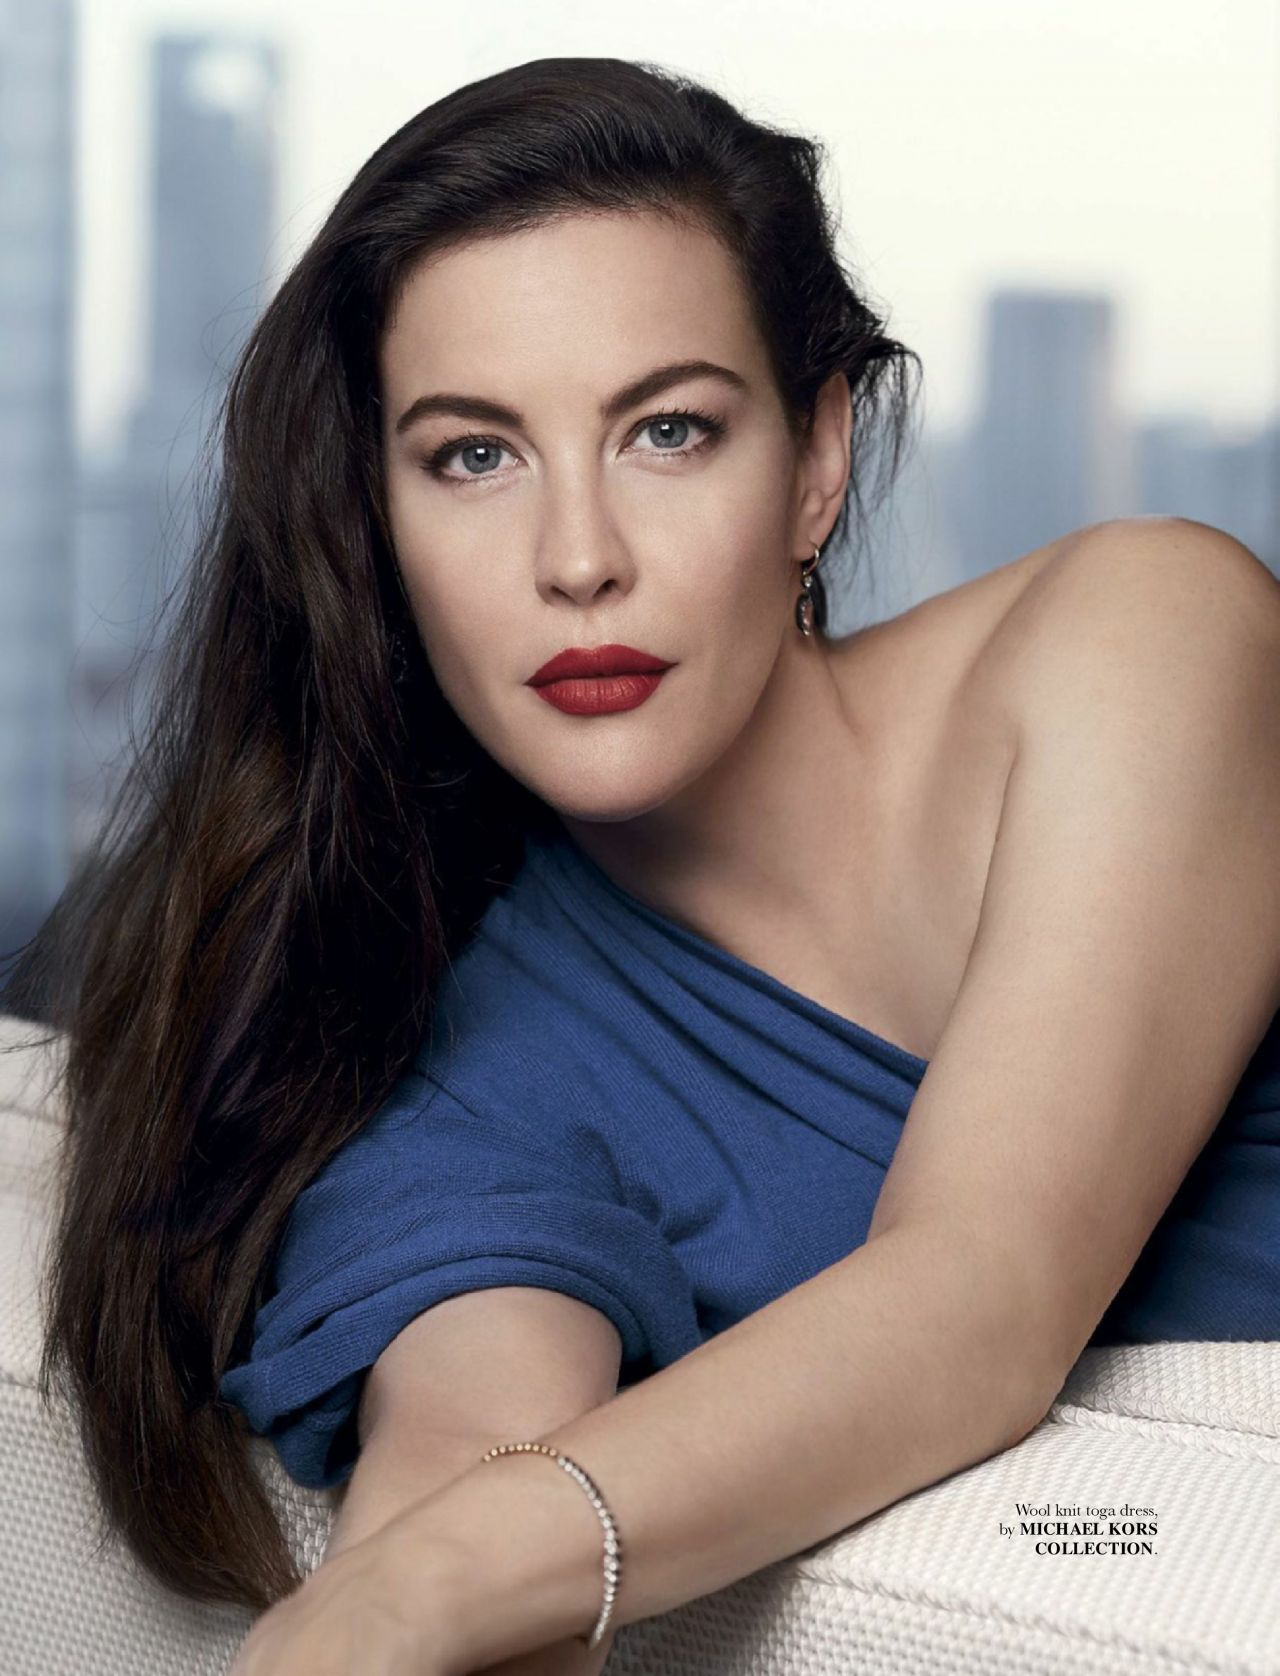 image Liv tyler in the ledge